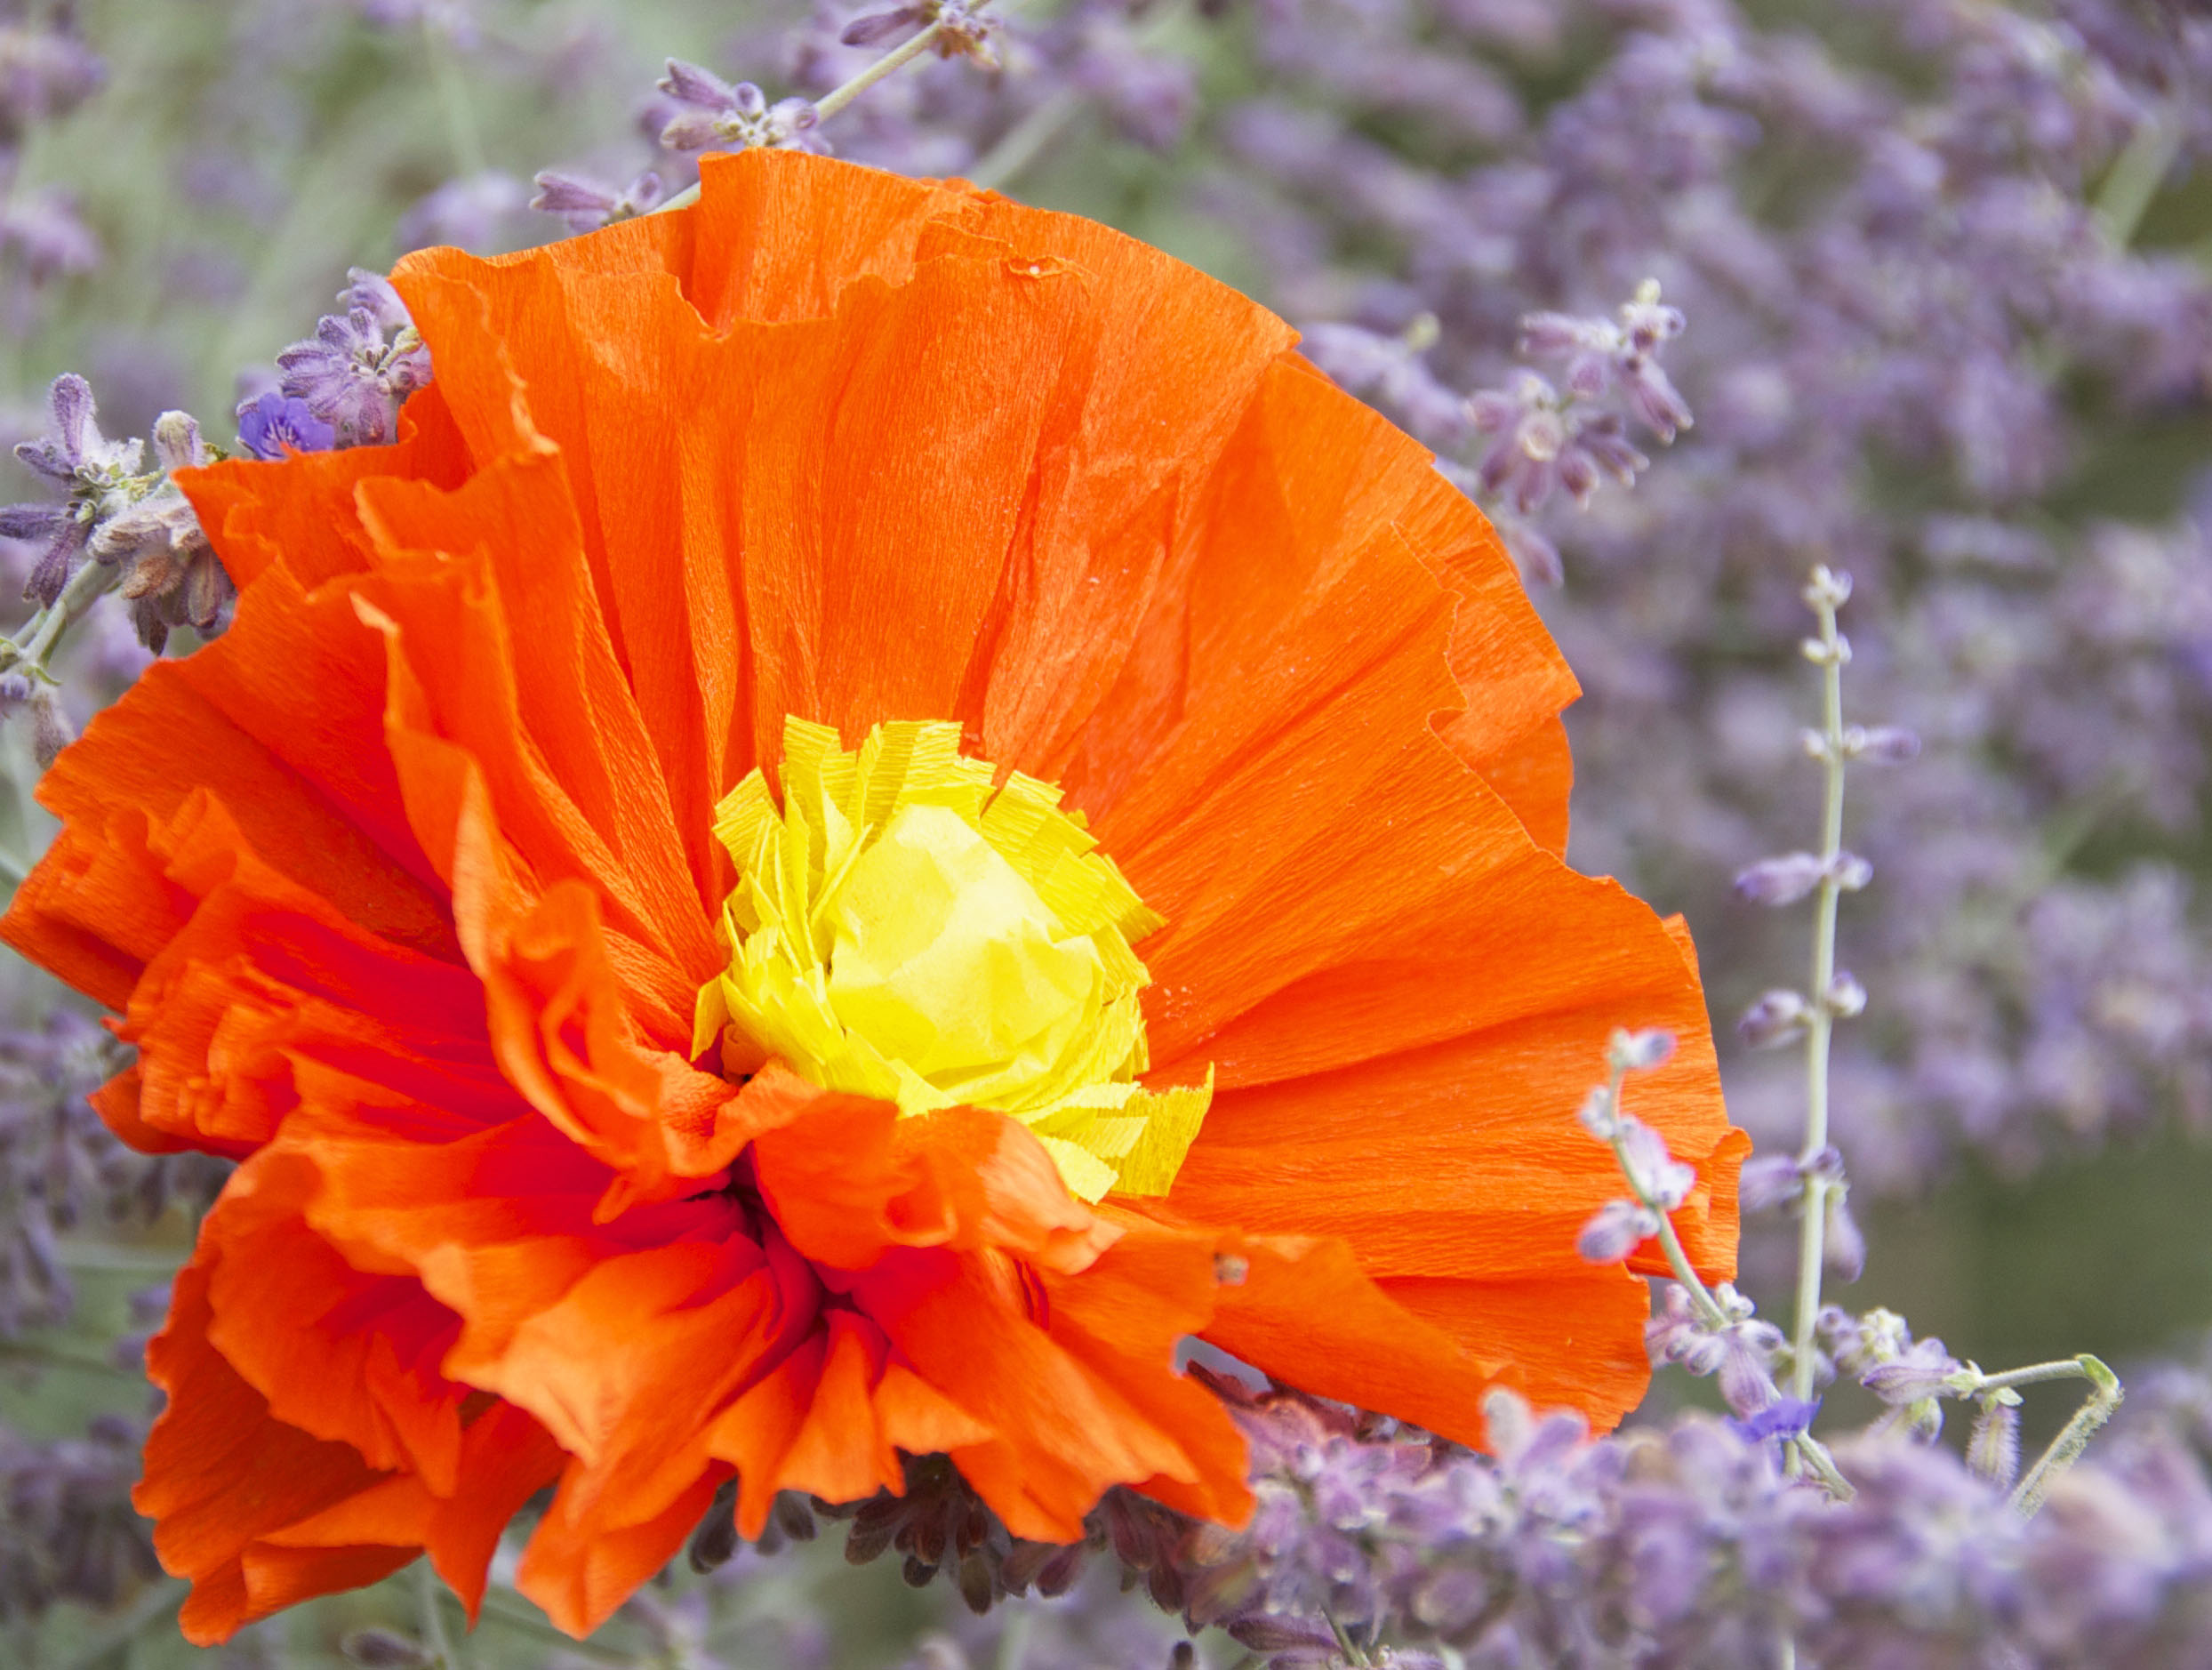 Red Poppy (created from Italian Crepe Paper) photographed with real lavender.